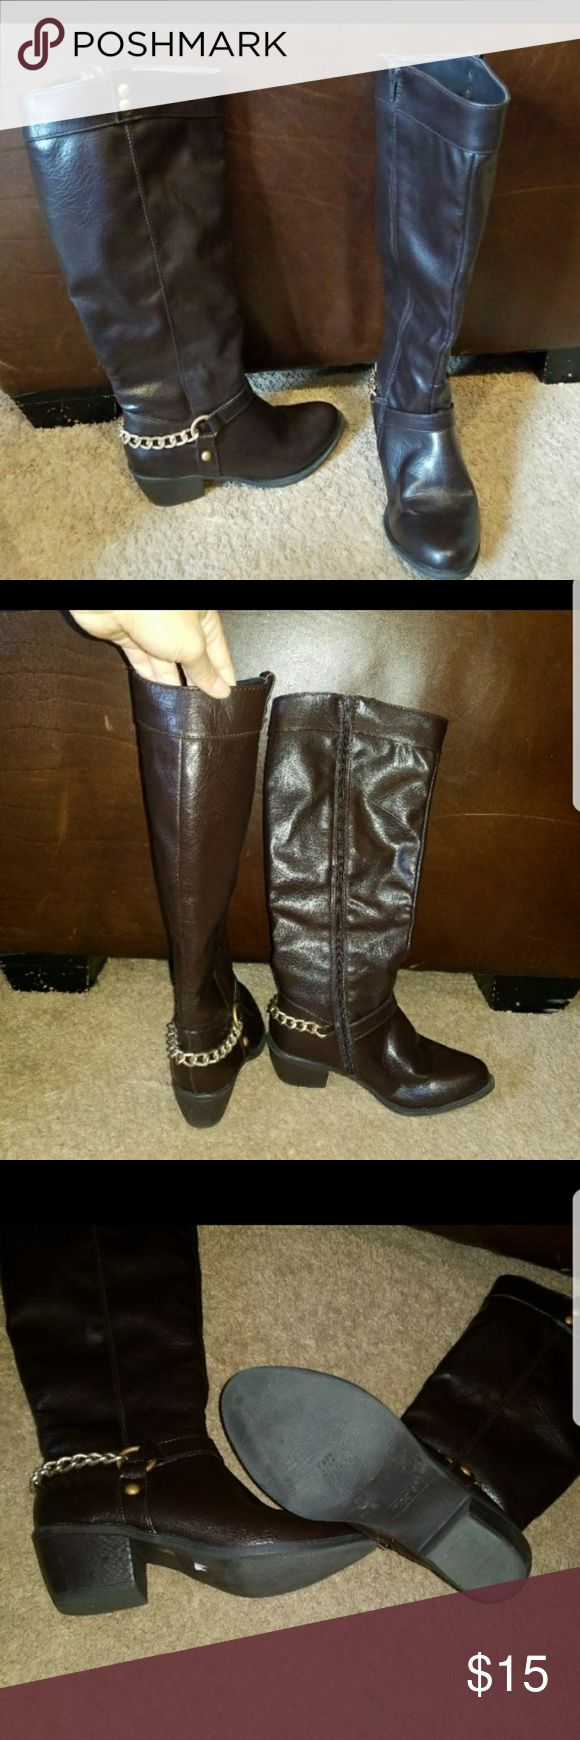 LONG BROWN ZIP UP TALL BOOTS, NICOLE, 6 Worn once, so like new. Brown tall zip up boots with gd chain detail. Size is 6. Made by Nicole in the style Durham. Check other items Nicole Shoes